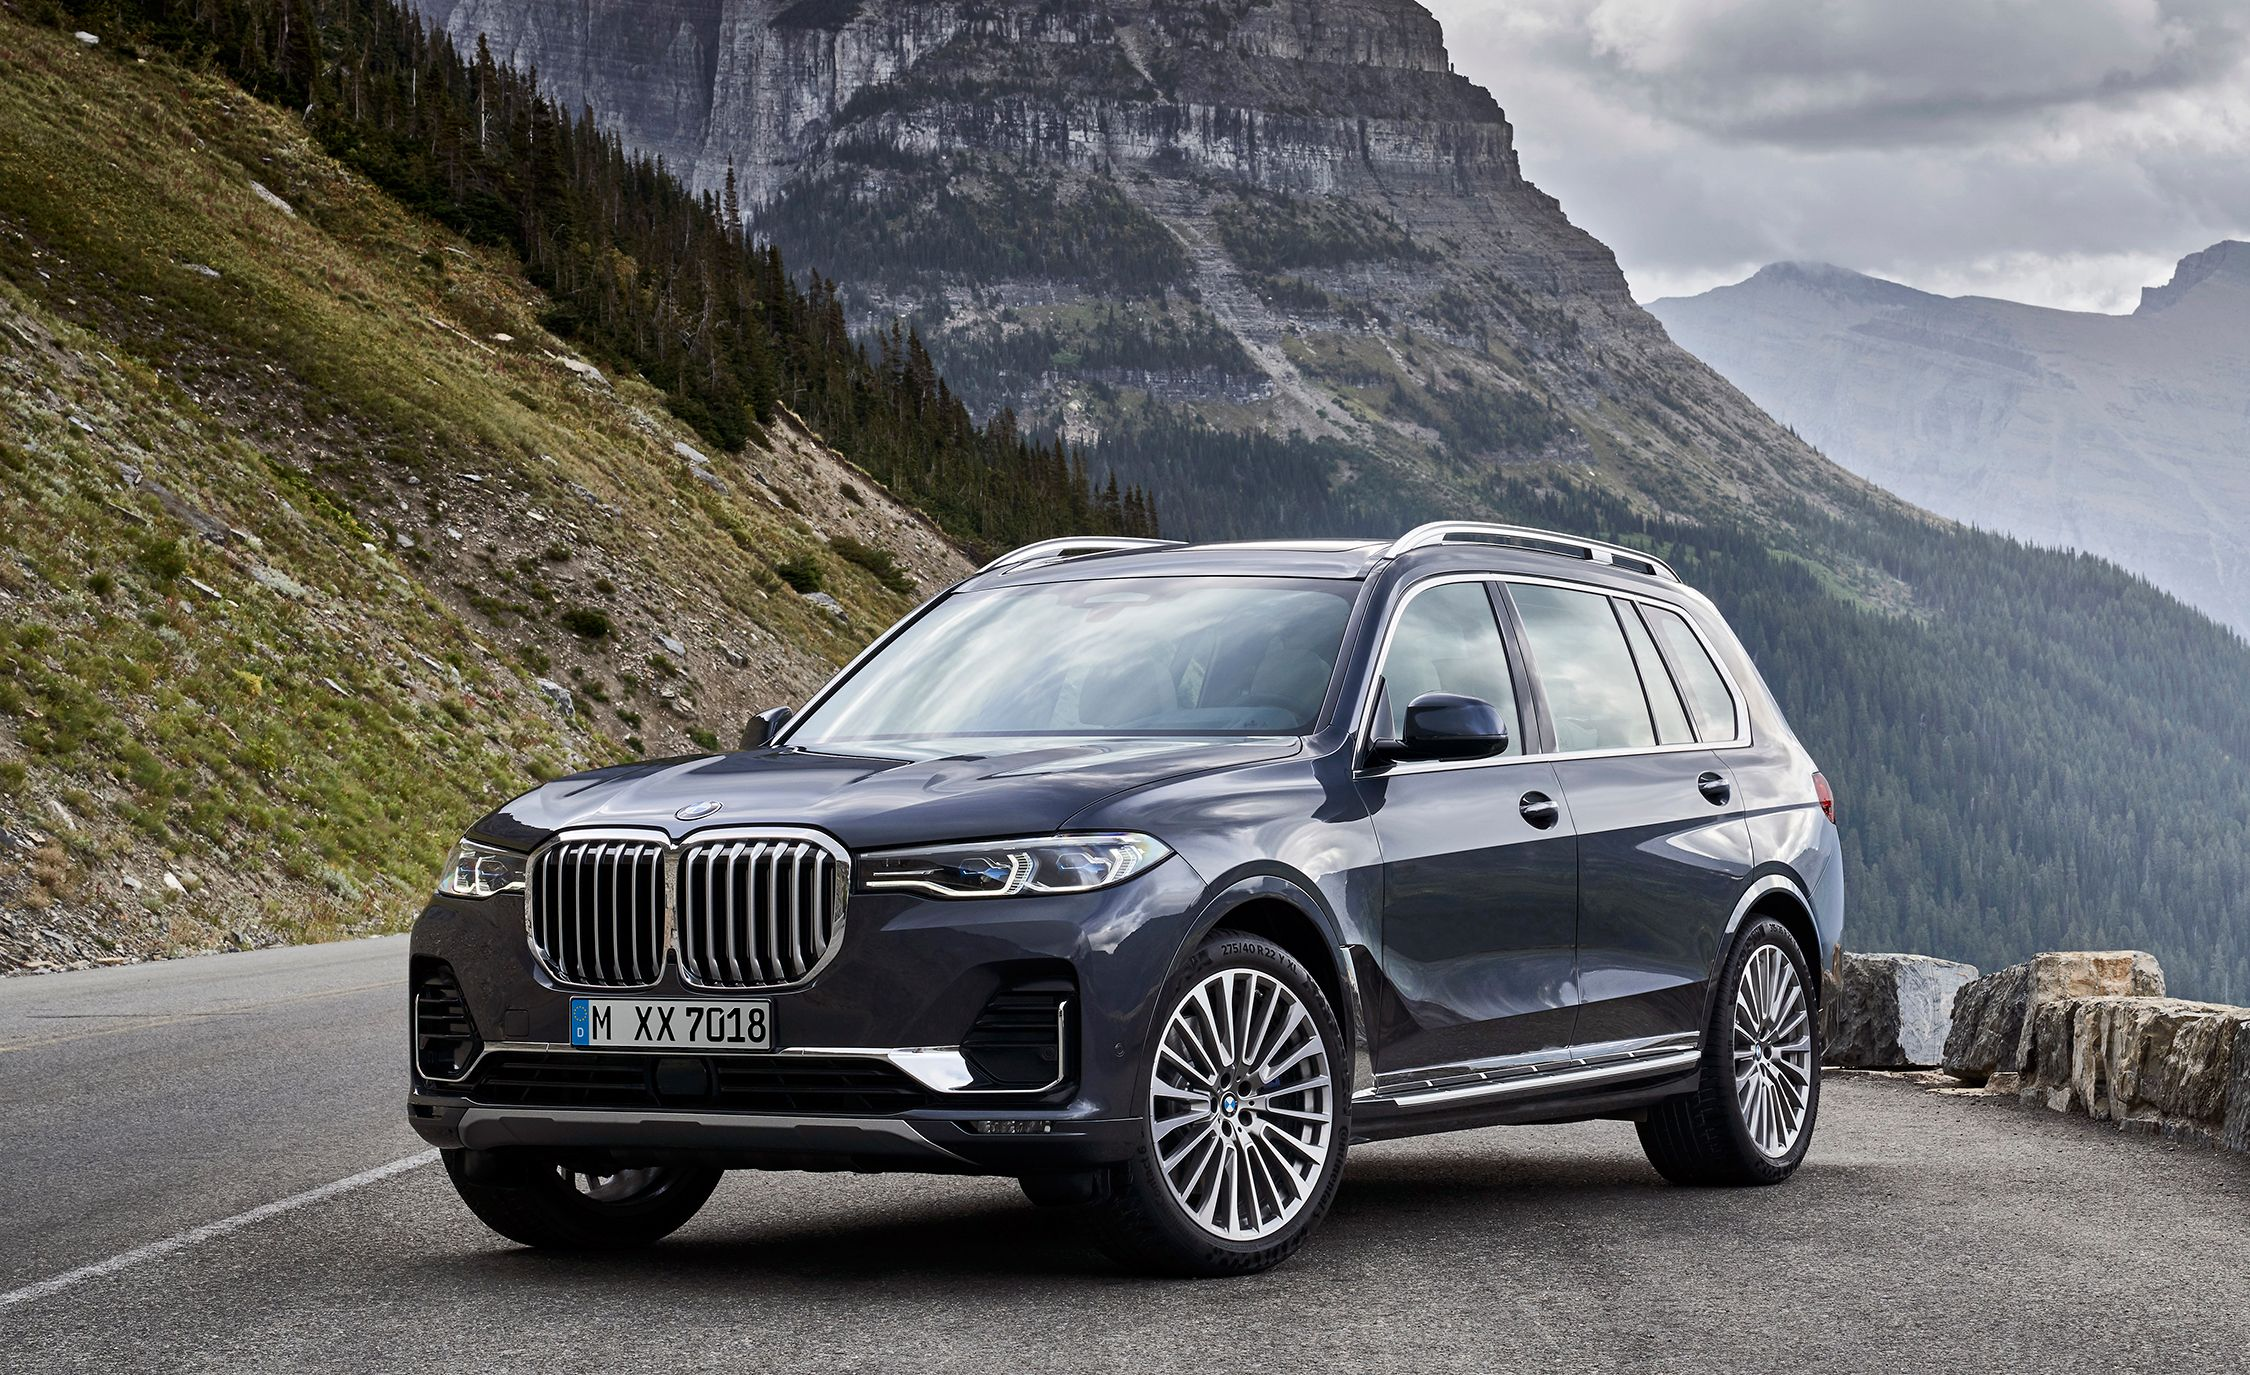 2019 Bmw X7 Review Pricing And Specs